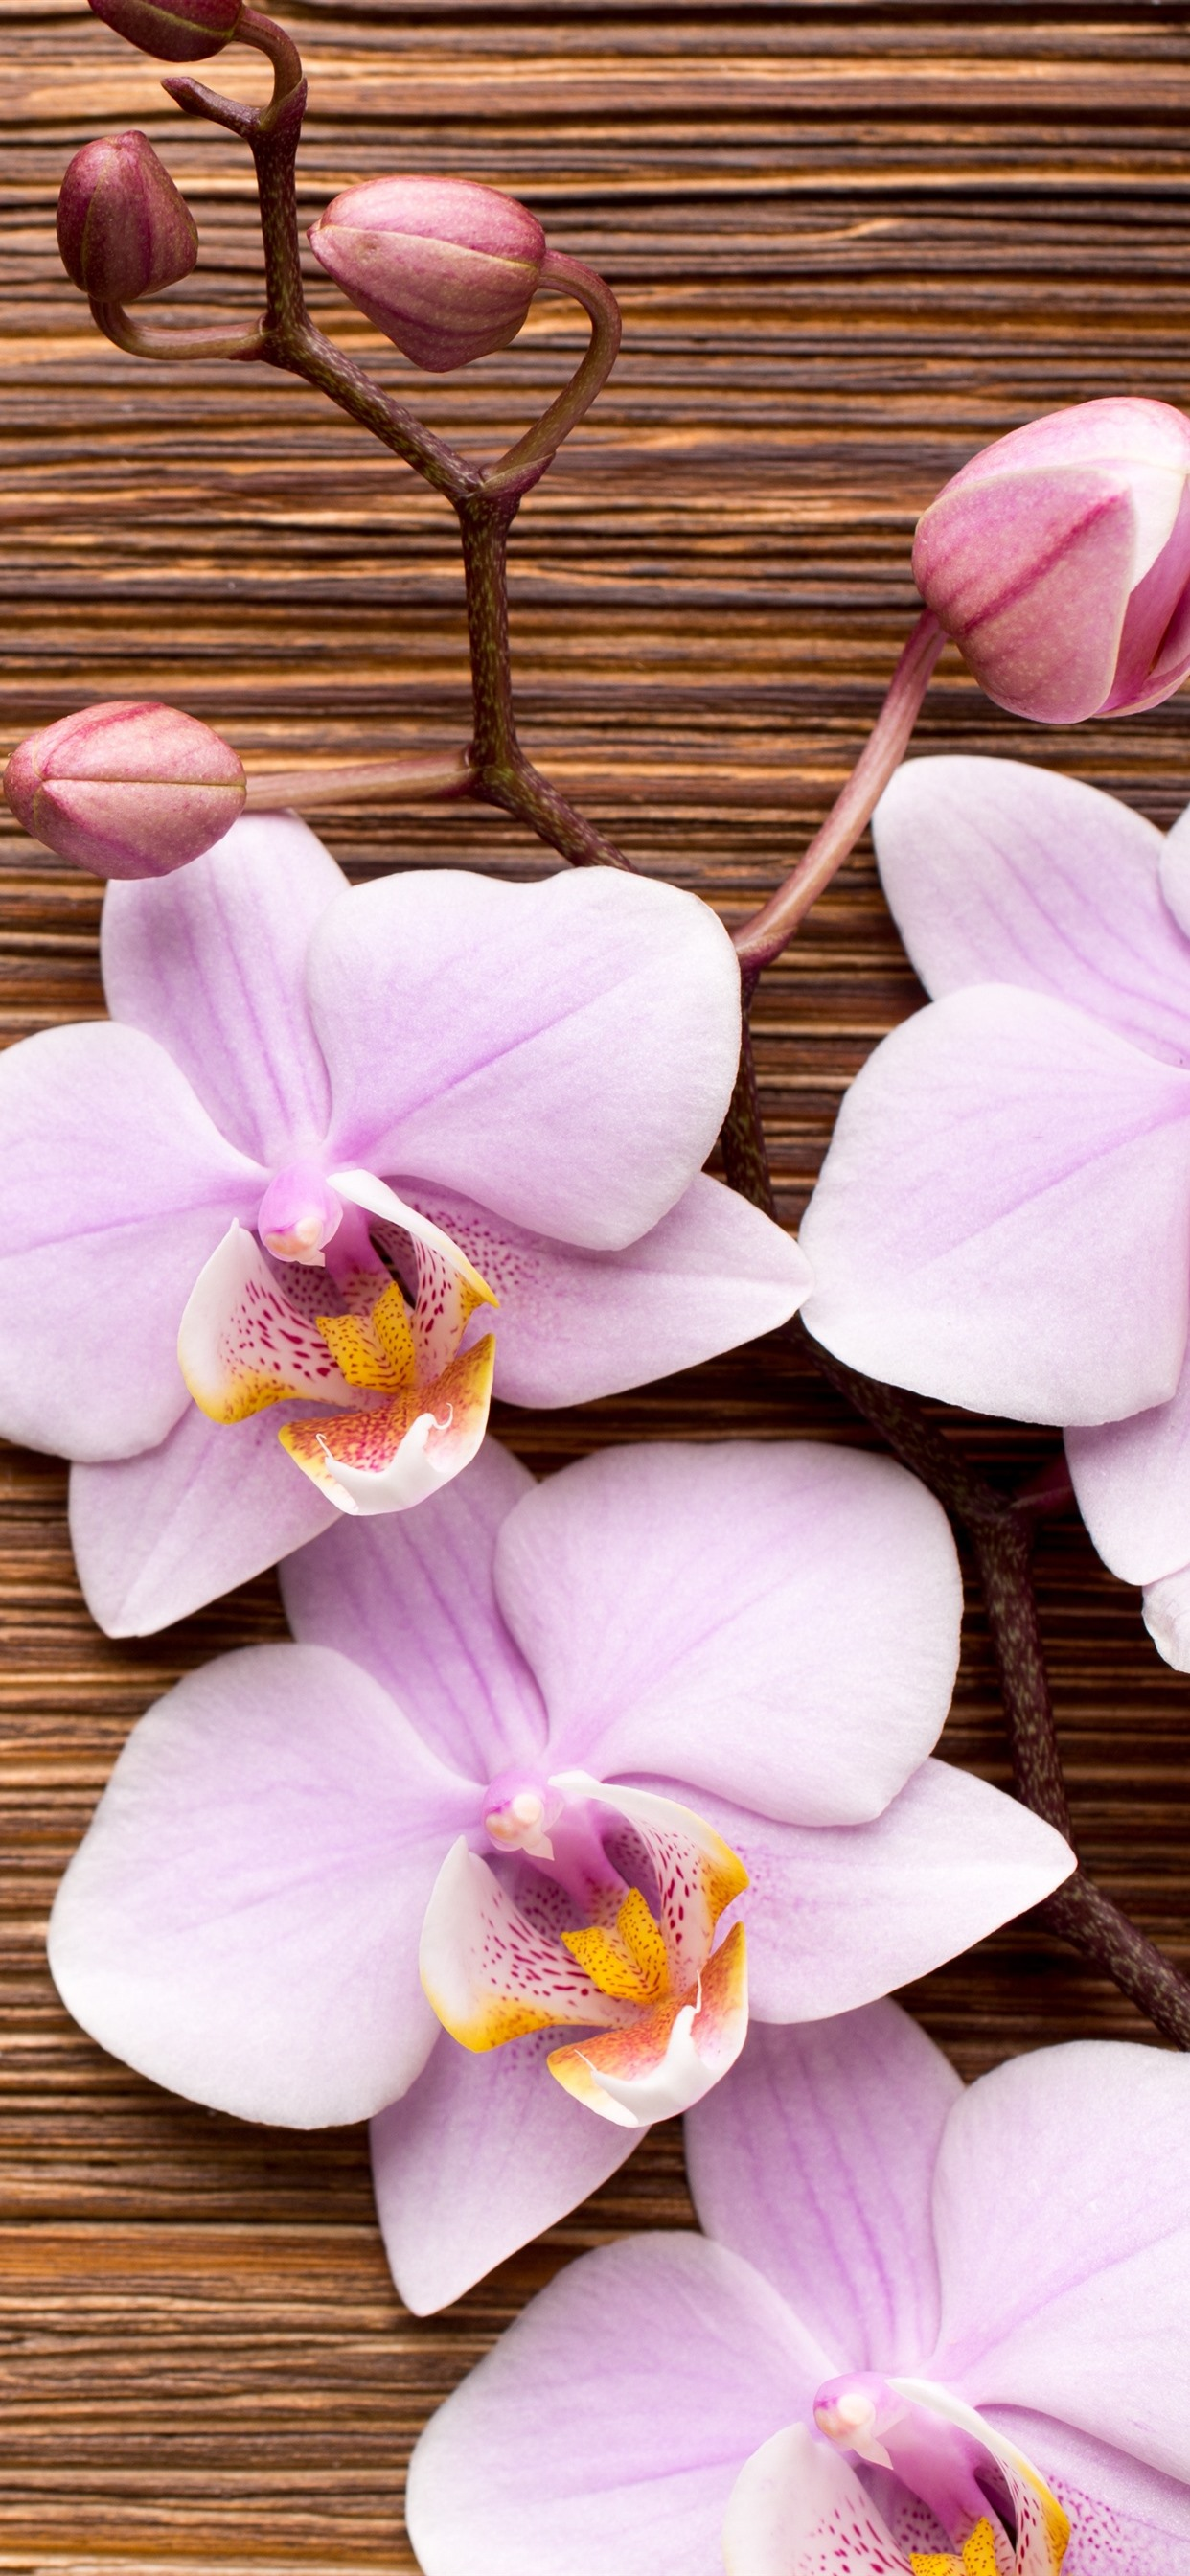 Light Pink Phalaenopsis Flowers Wood Board 1242x2688 Iphone 11 Pro Xs Max Wallpaper Background Picture Image